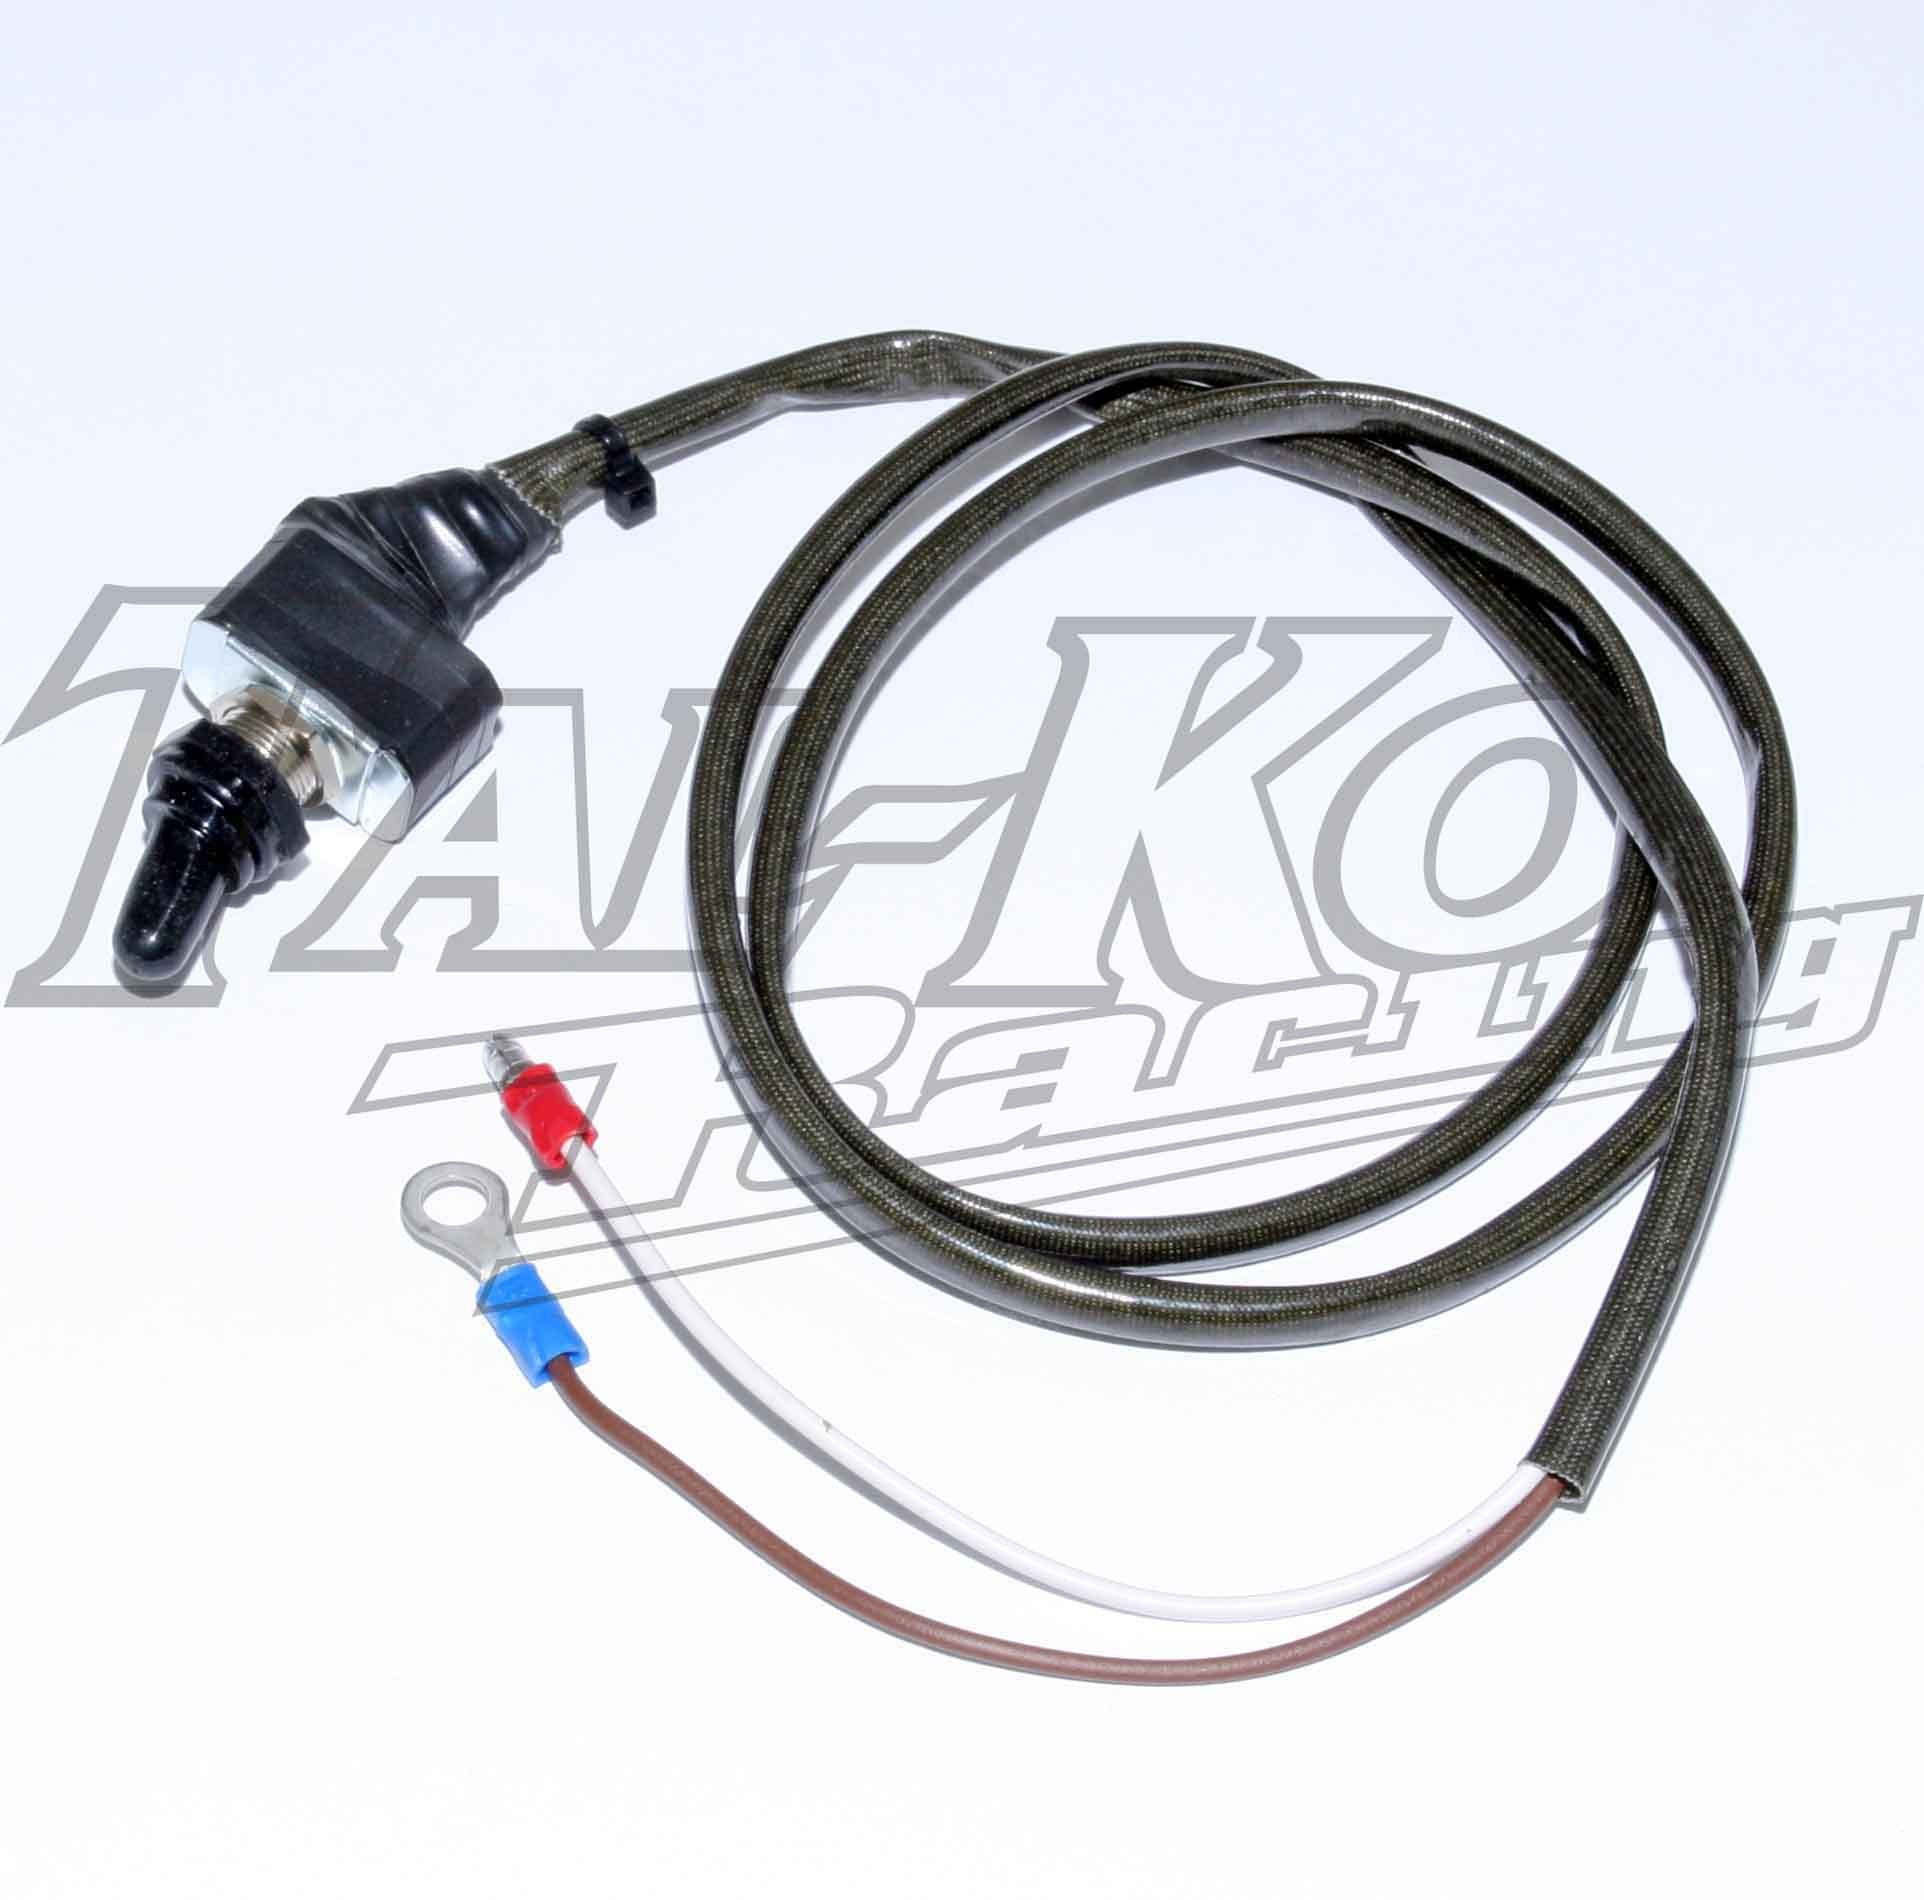 IGNITION KILL SWITCH WITH LOOM